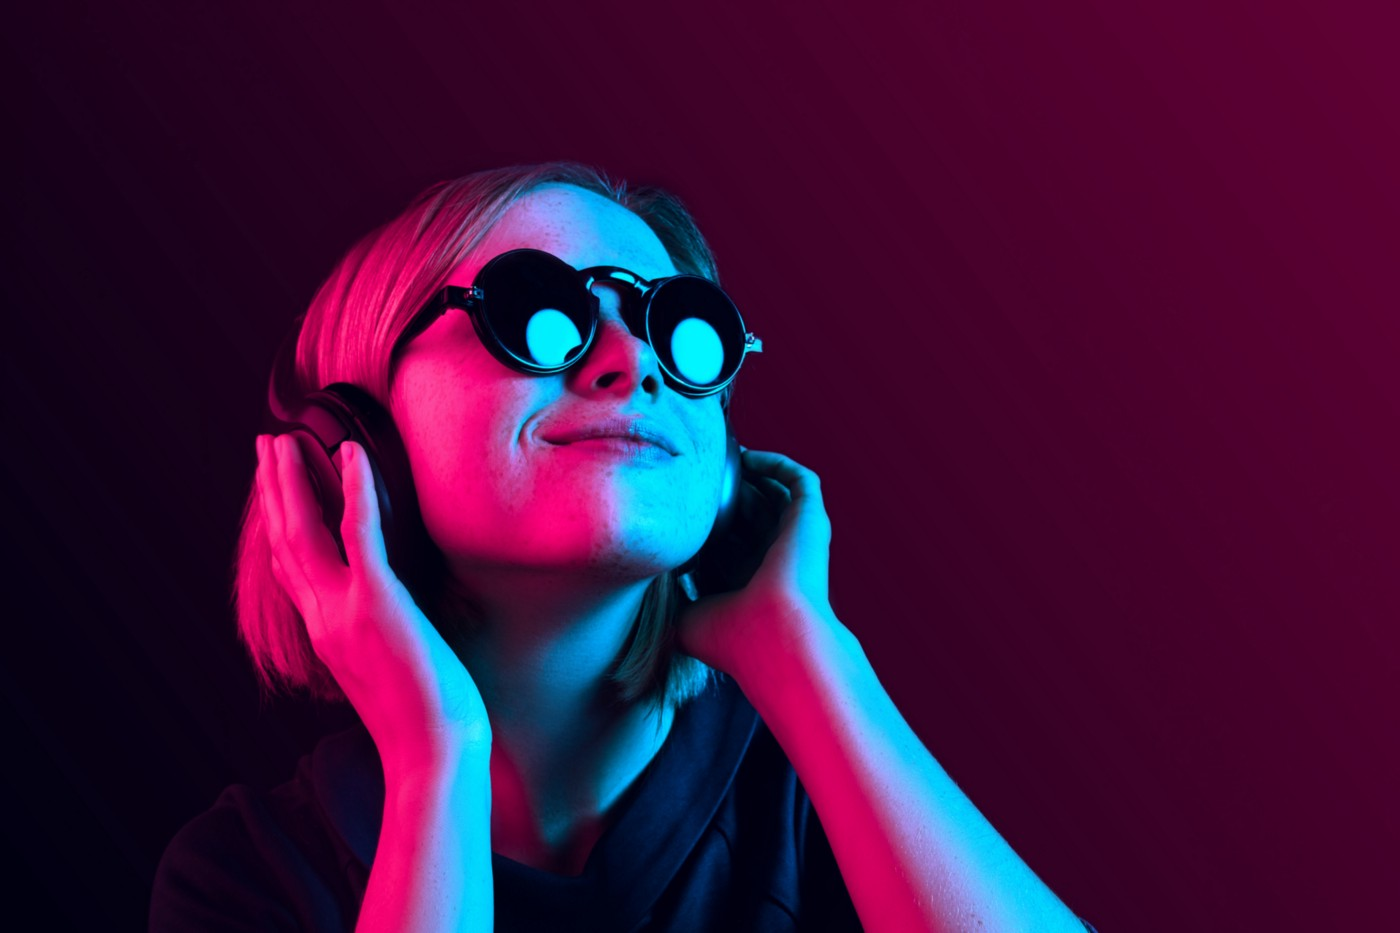 A photo of a girl with sunglasses and headphones on, with neon pink/blue lighting.